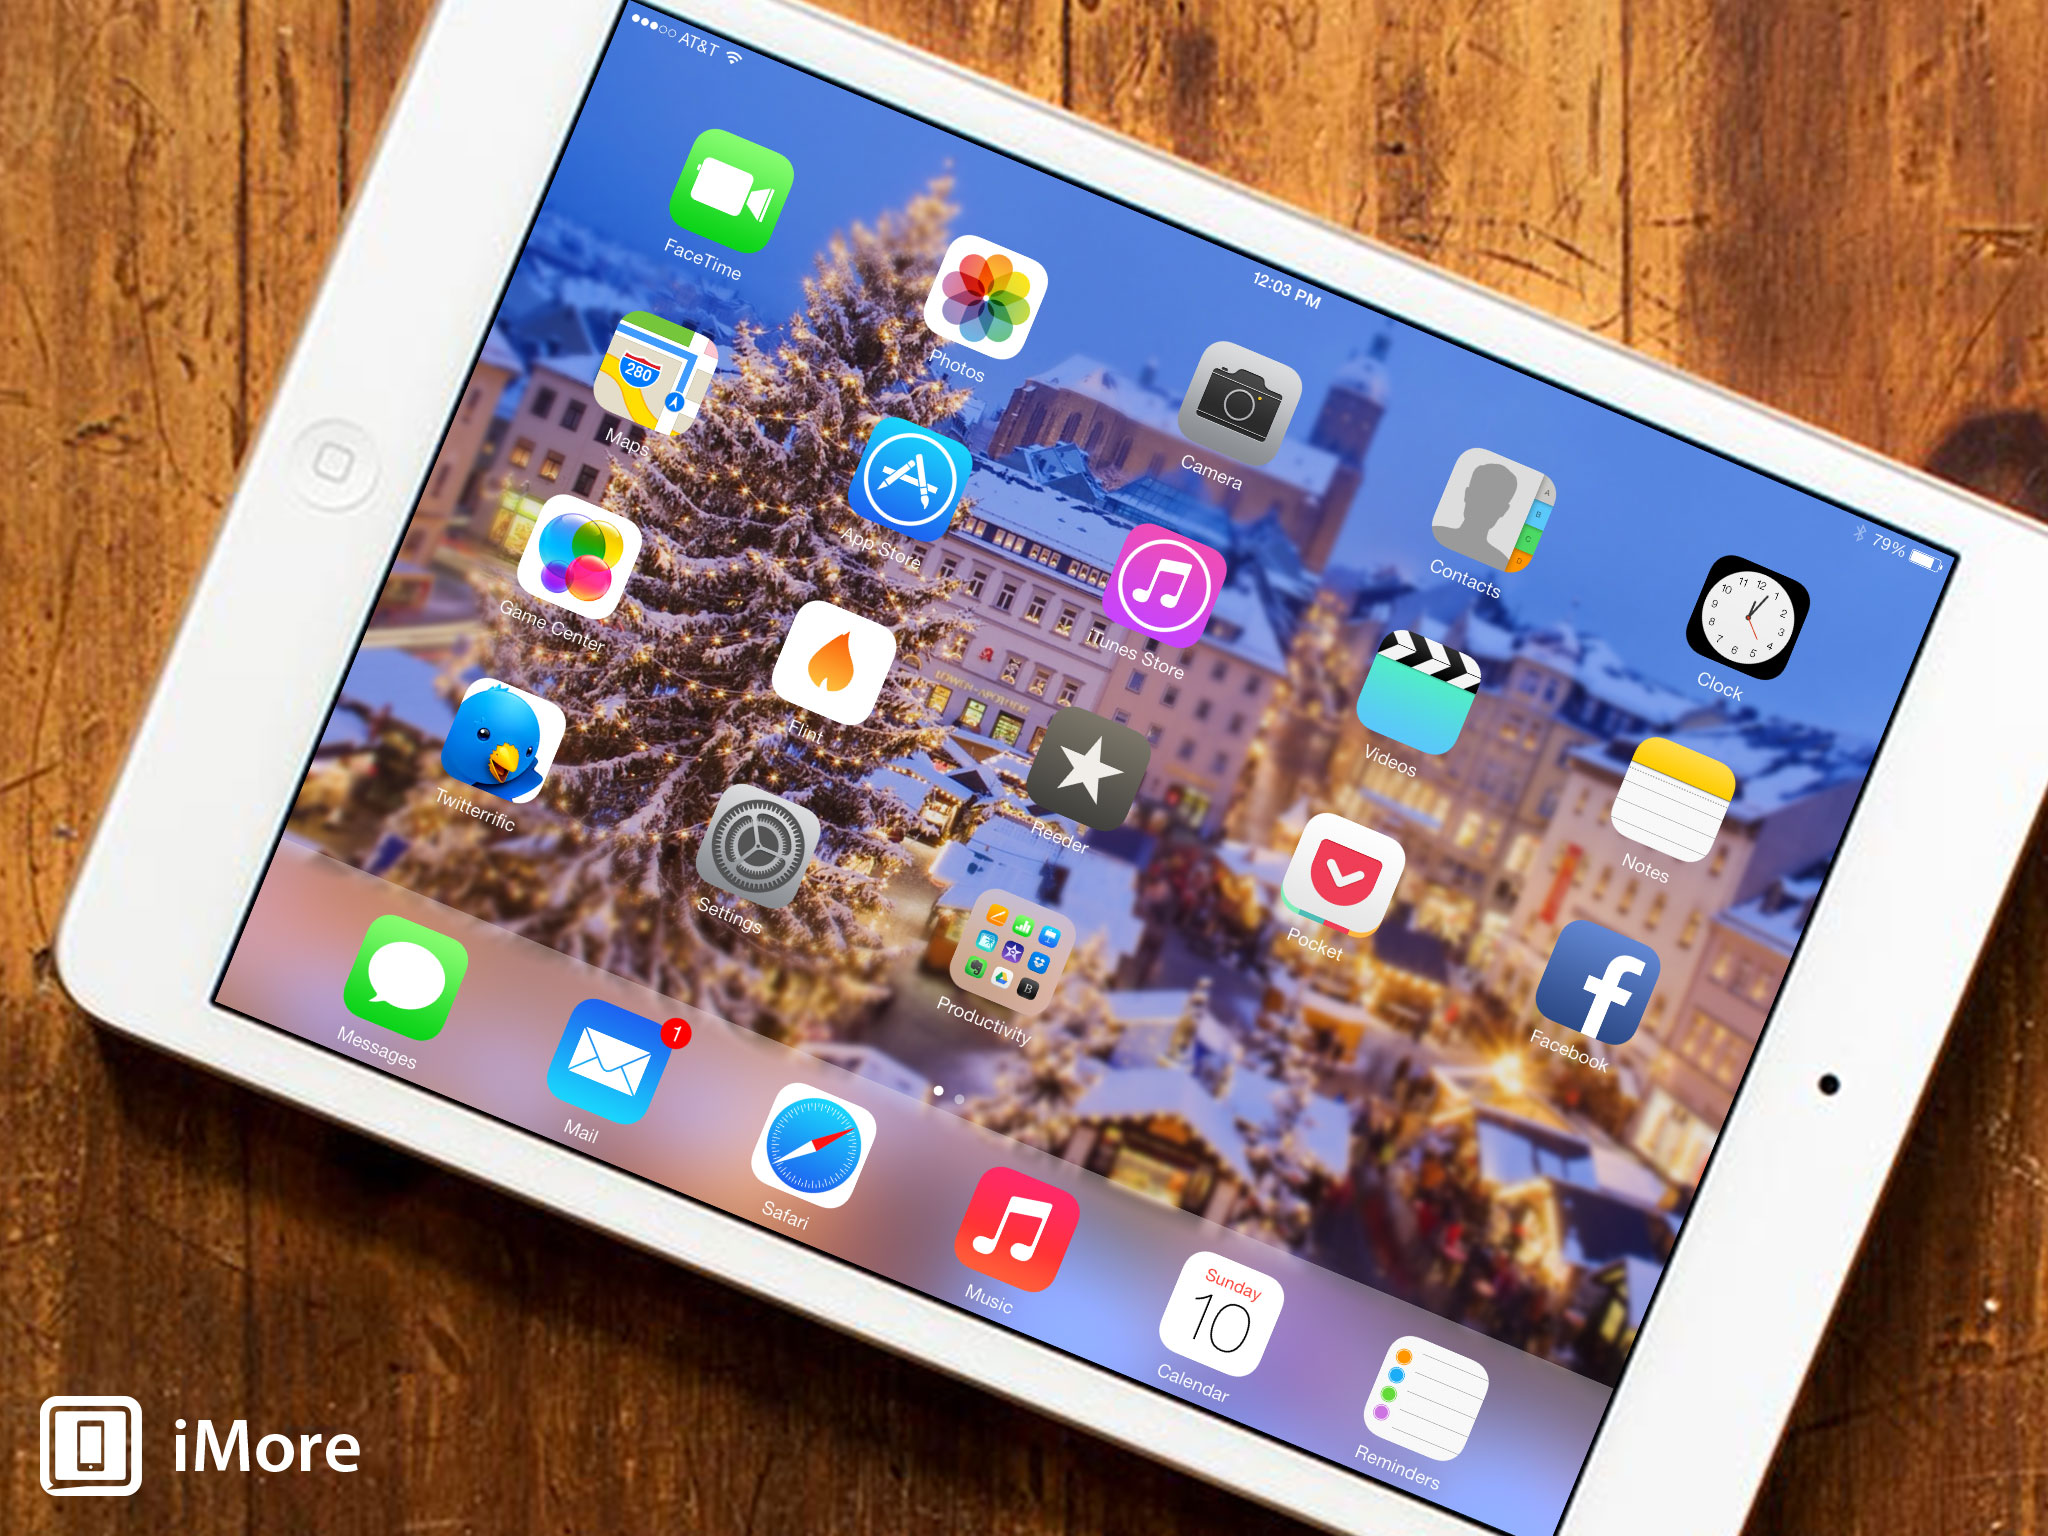 Why your wallpapers look messed up on iOS 7, and how to fix them! | iMore